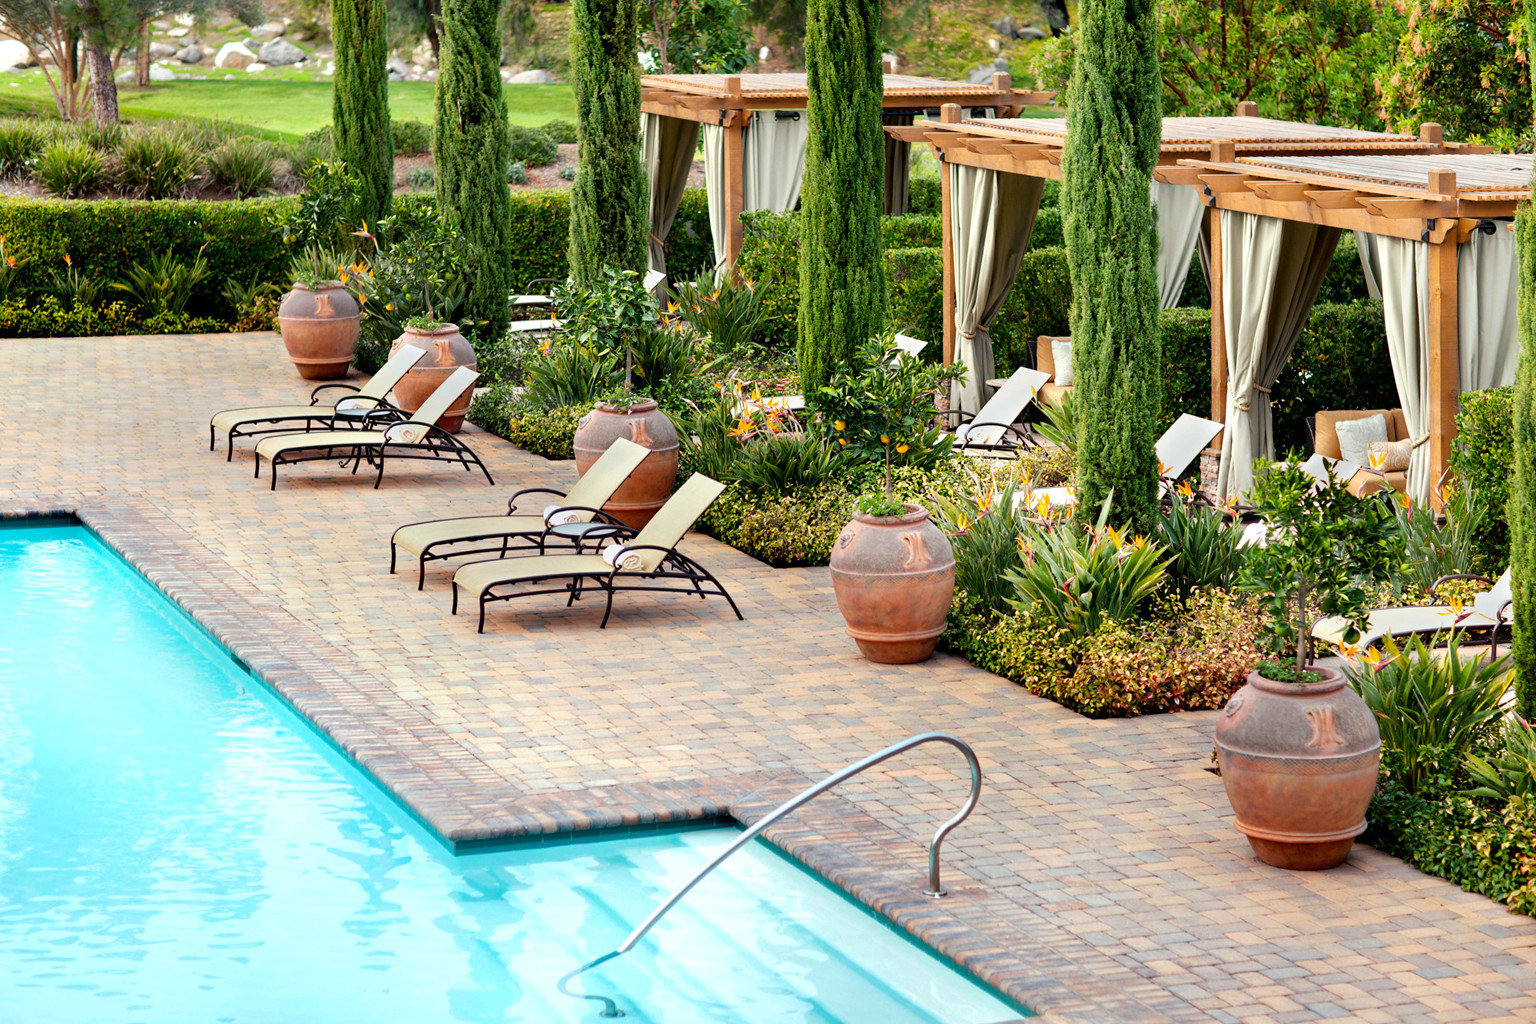 Beauty Garden Hotels Inn Lounge Patio Pool Resort Terrace Trip Ideas tree outdoor table swimming pool property backyard yard Courtyard outdoor structure estate landscape architect real estate lawn Villa landscaping cottage Deck